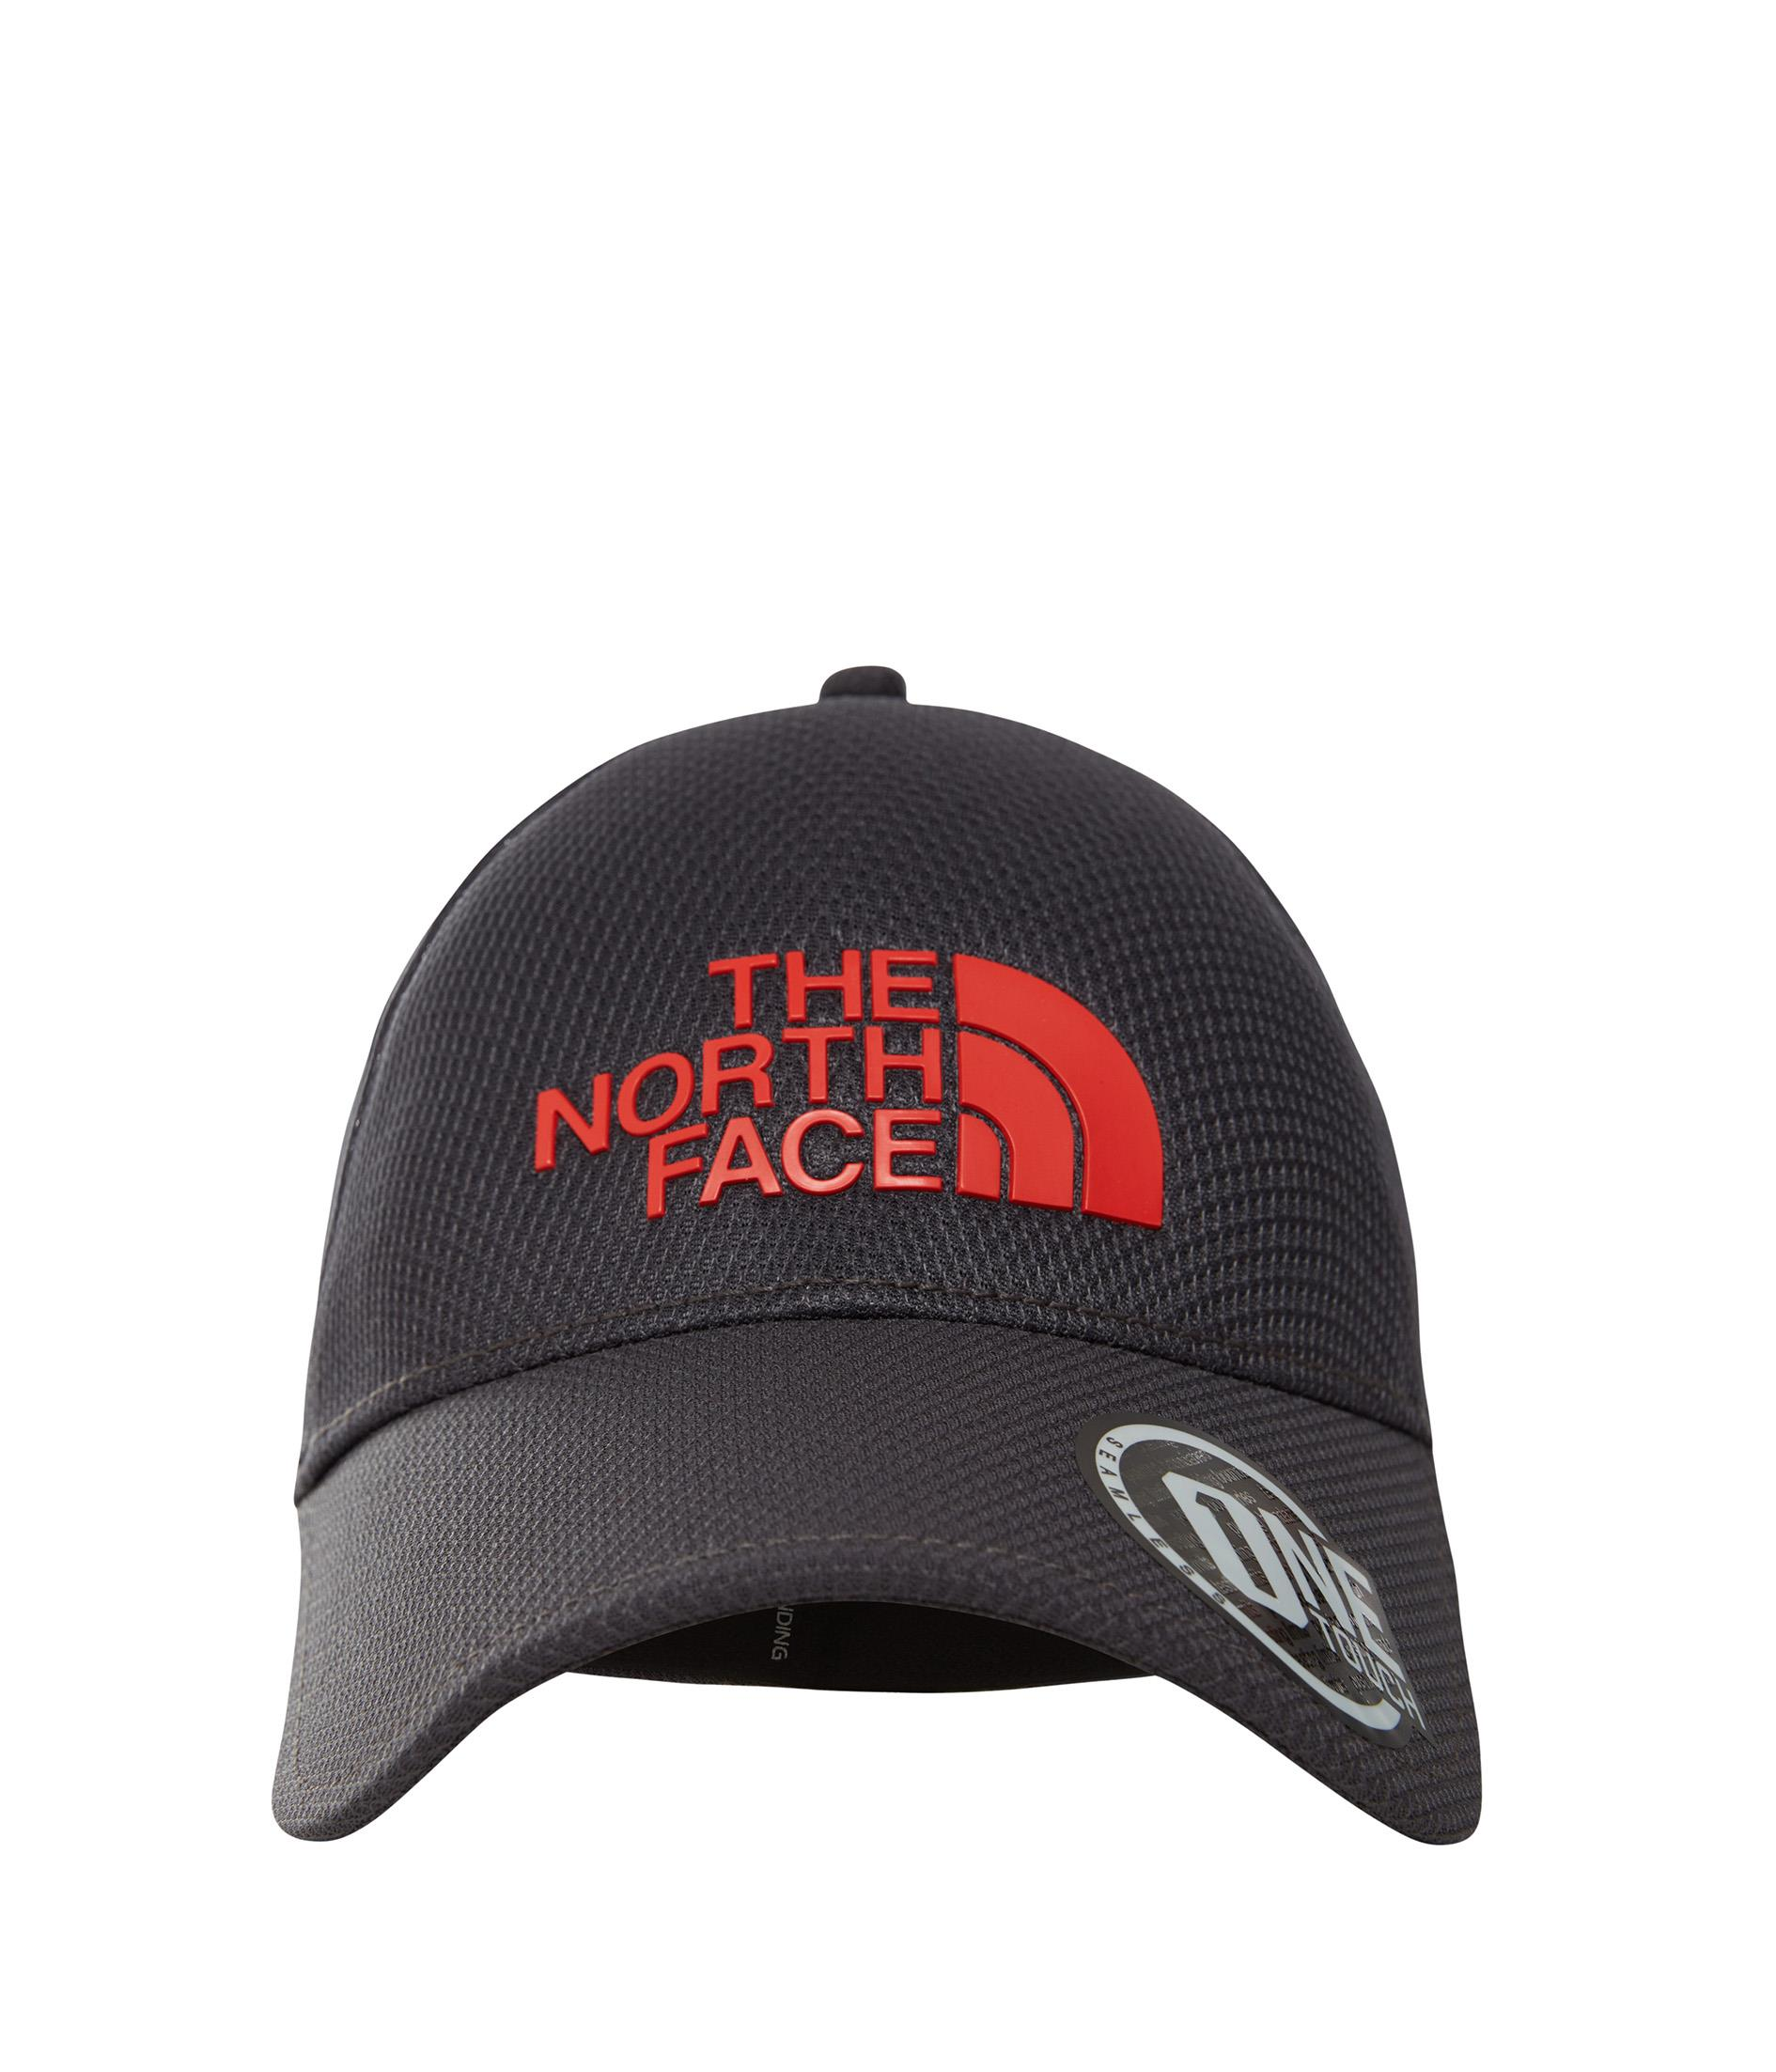 The Northface Tnf One Touch Lite Ball Cap T93Kbs7S2